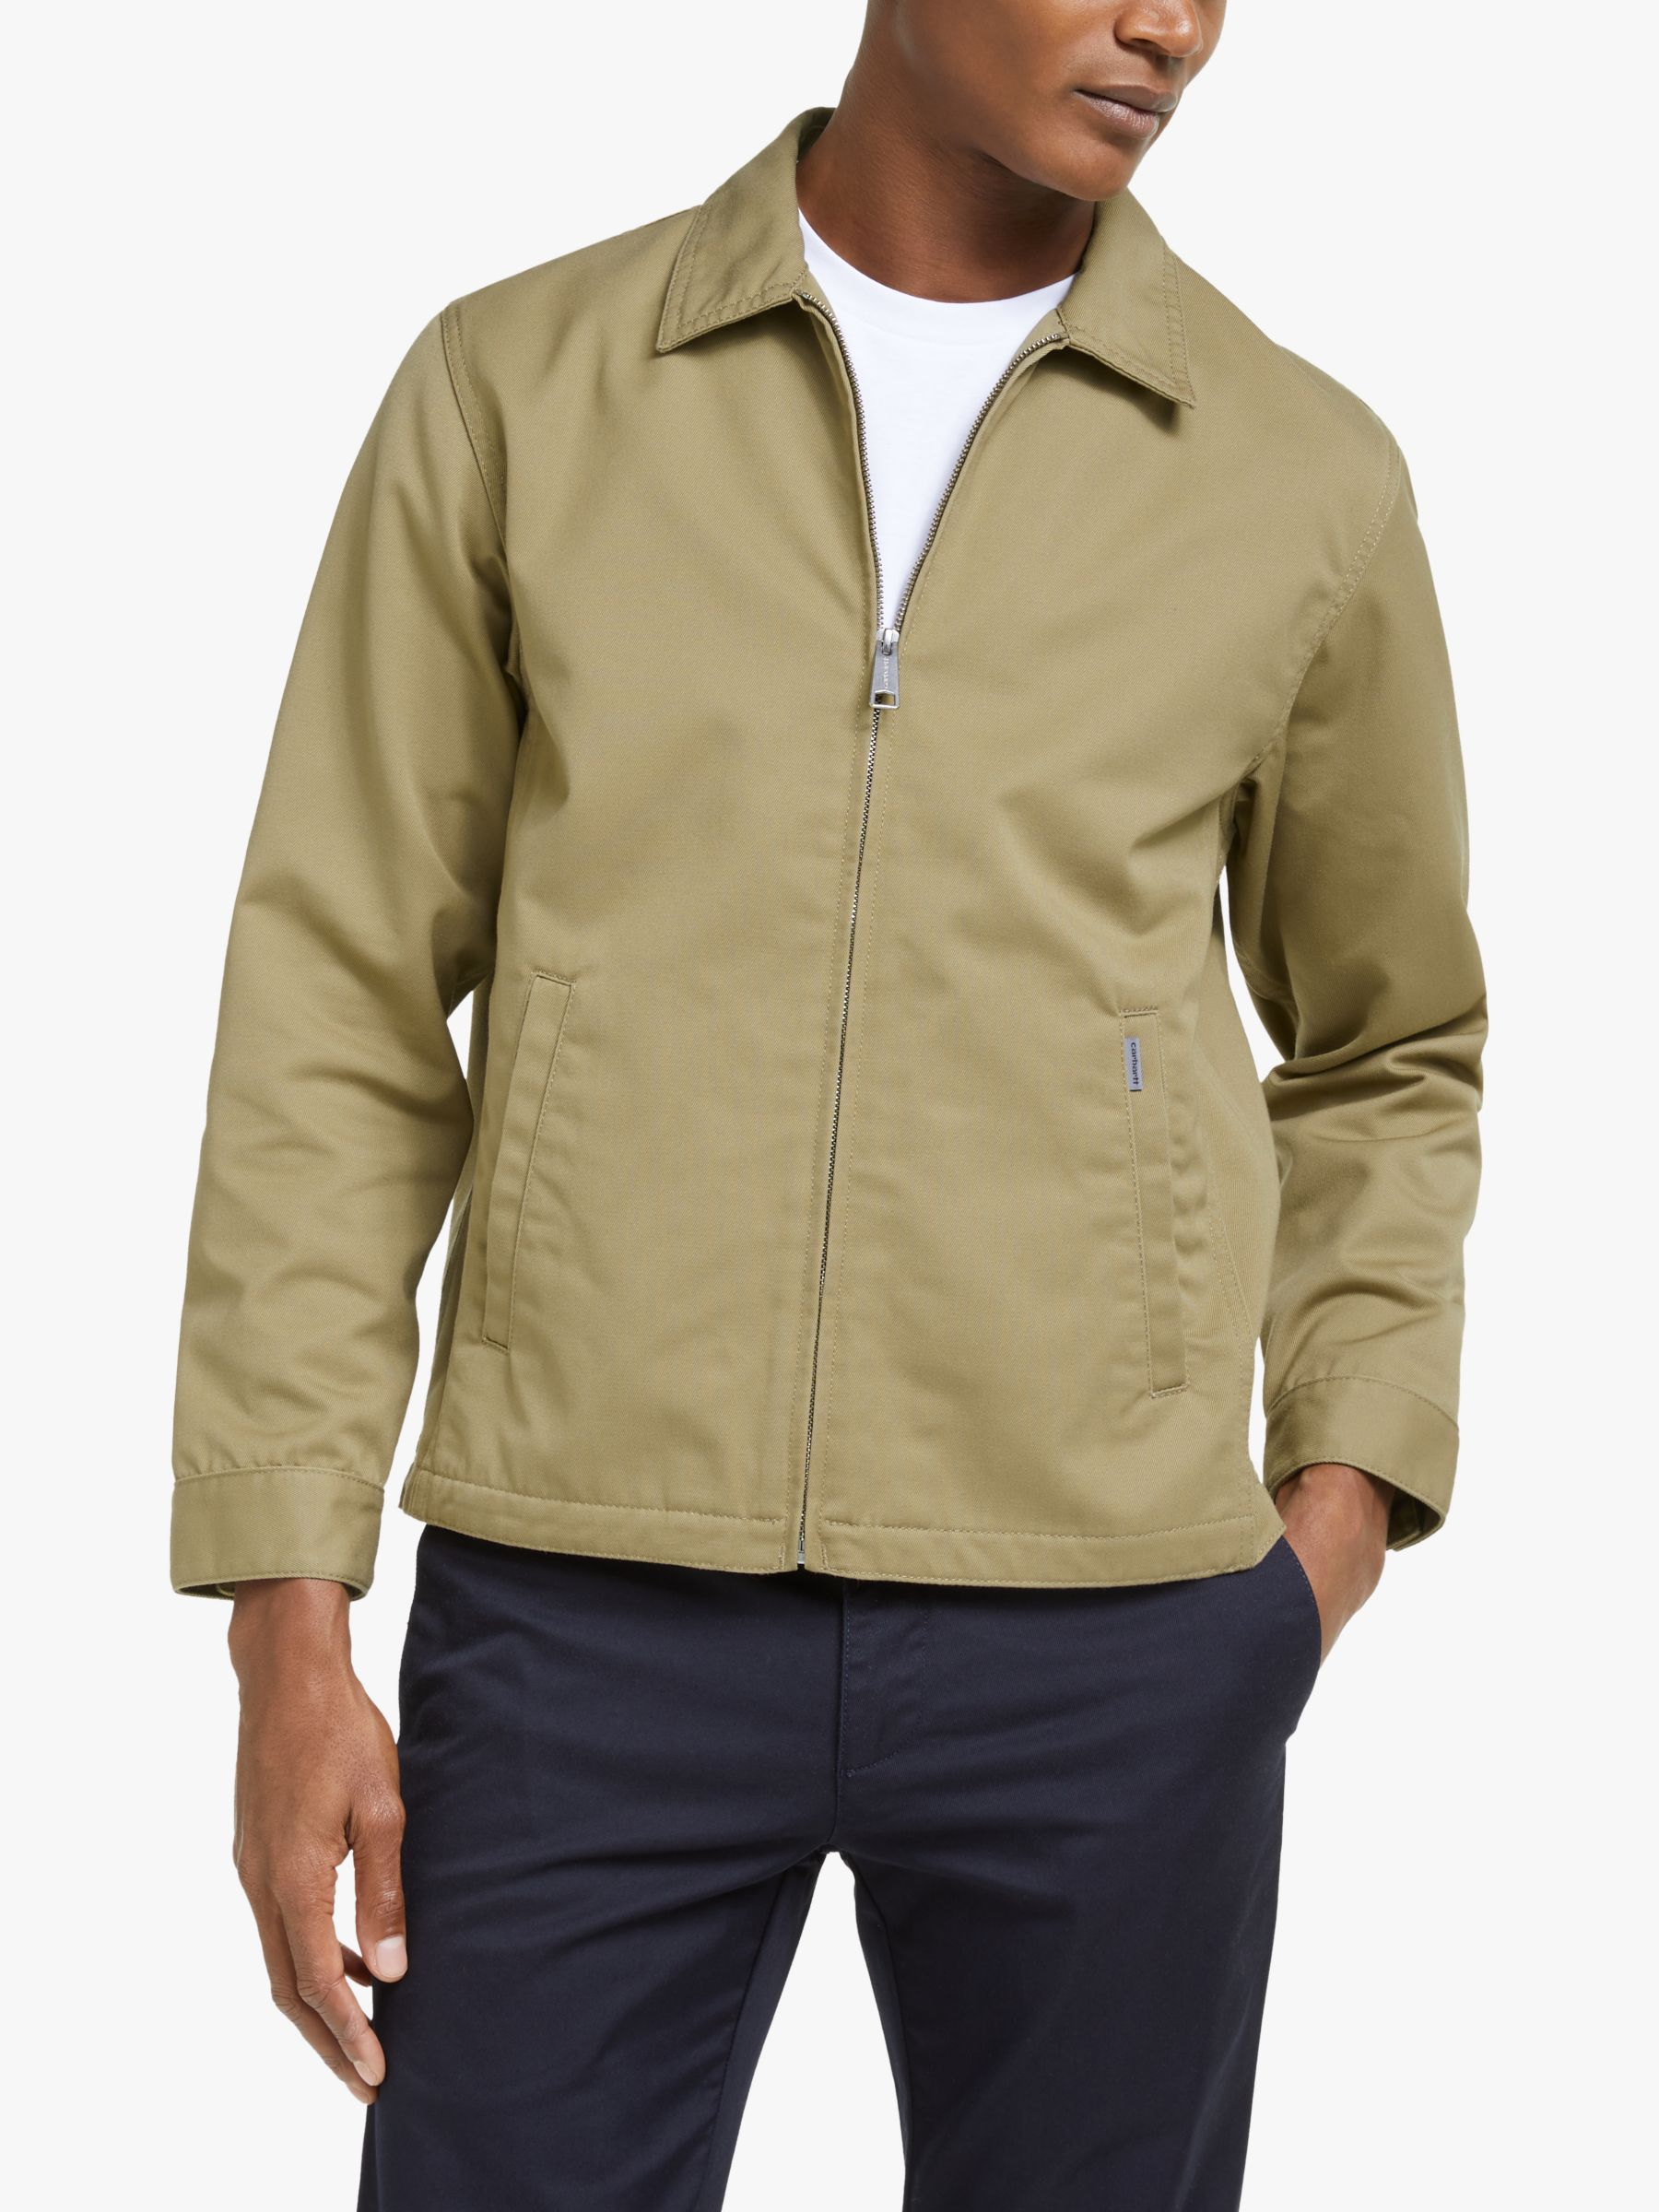 Carhartt WIP Carhartt WIP Modular Jacket, Leather Rinsed